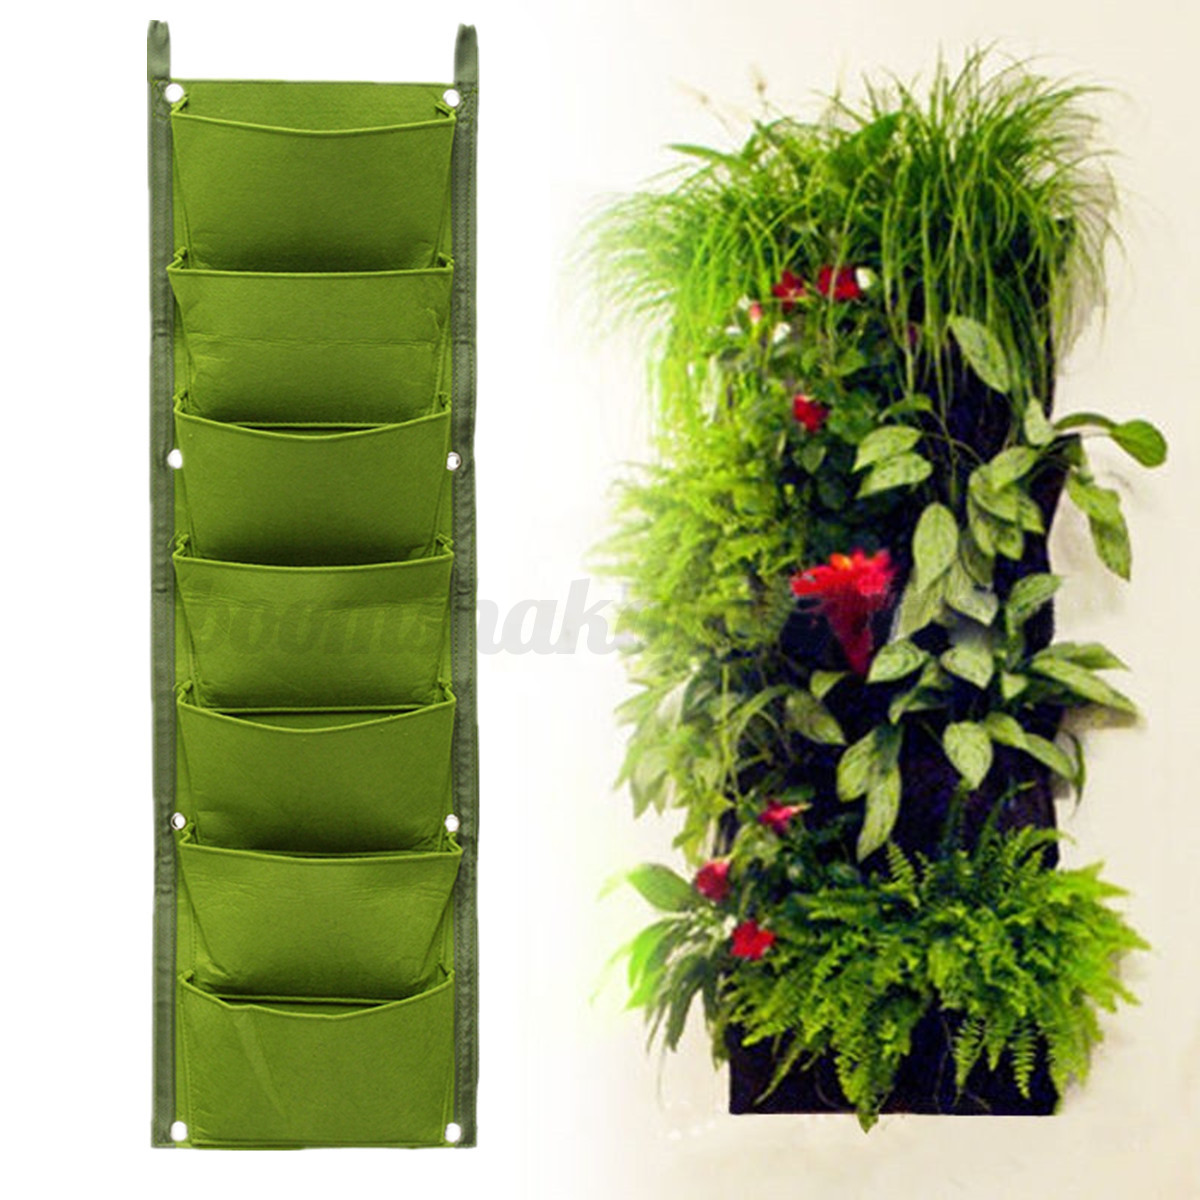 Wall Hanging Plants 1 4 7 Pocket Vertical Wall Garden Hanging Plant Planting